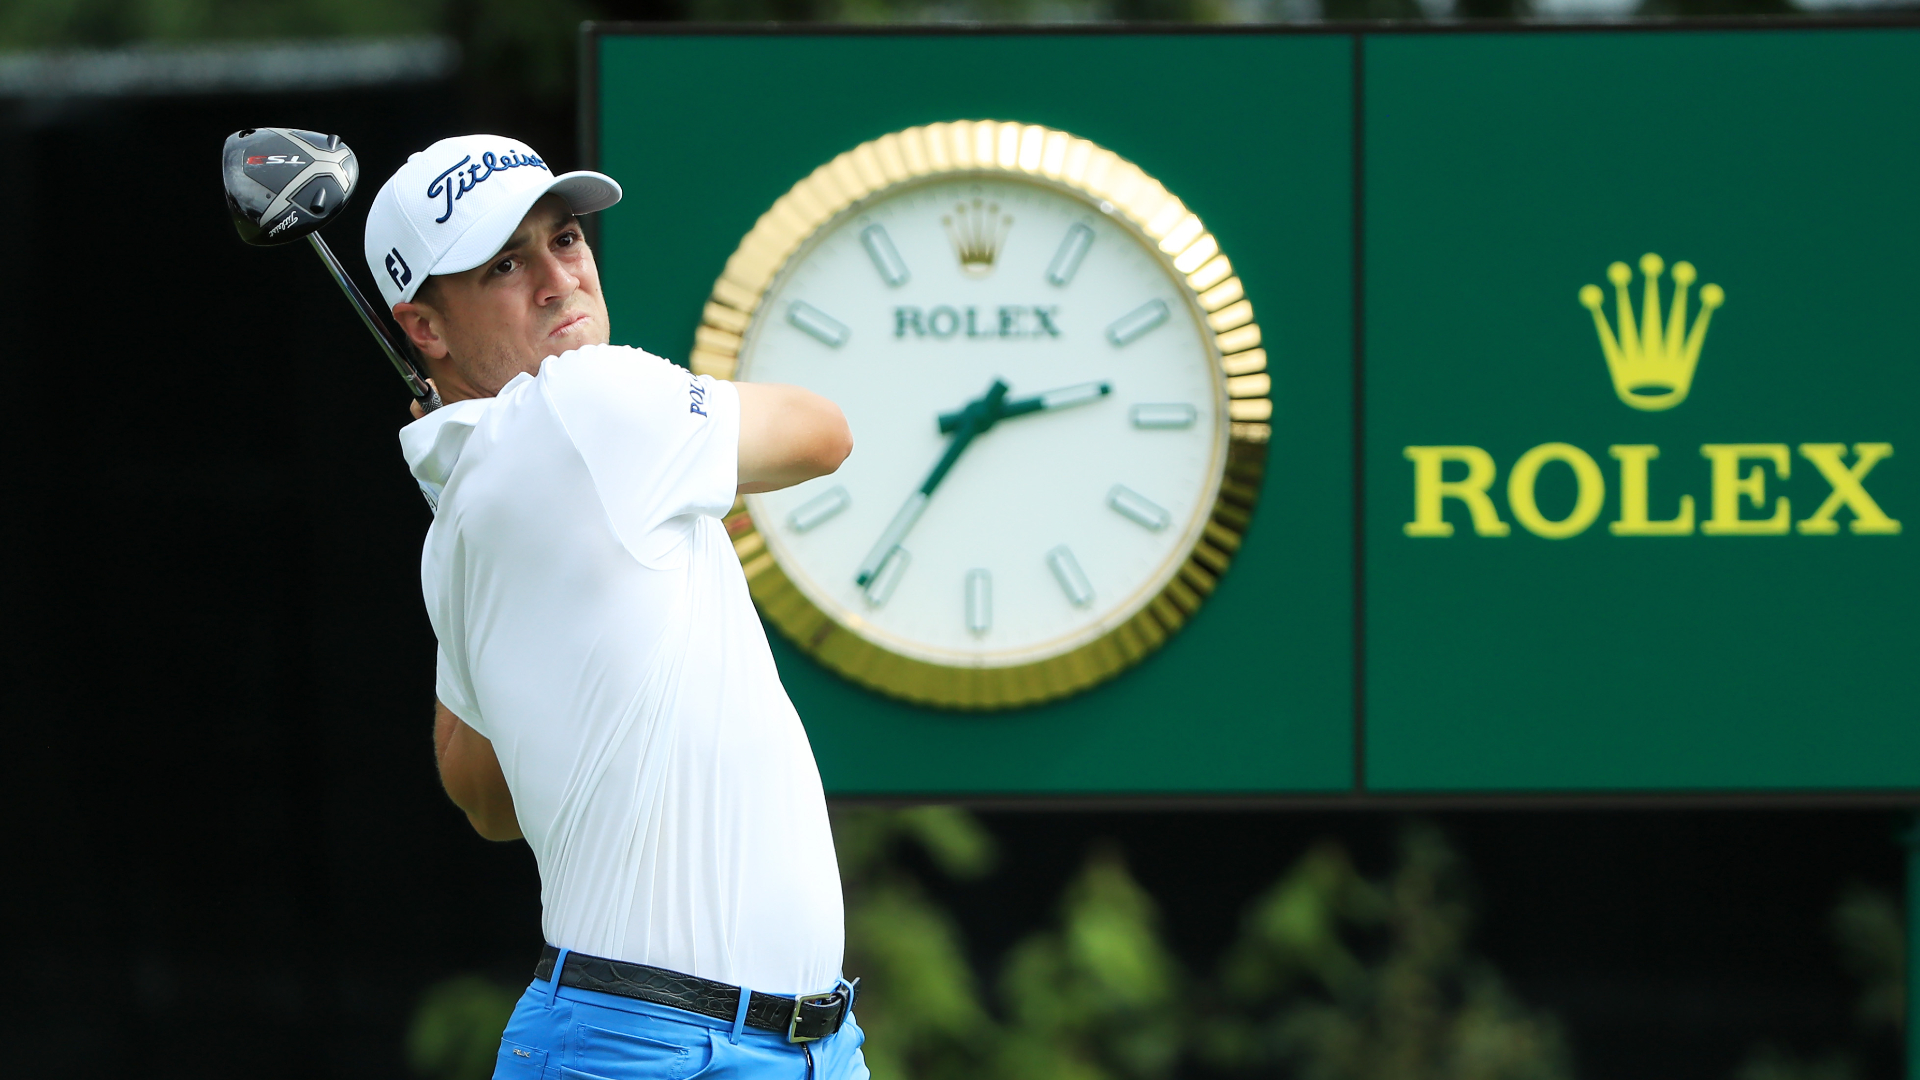 BMW Championship 2020 tee times, TV coverage, live stream & more to watch Friday's Round 2 1